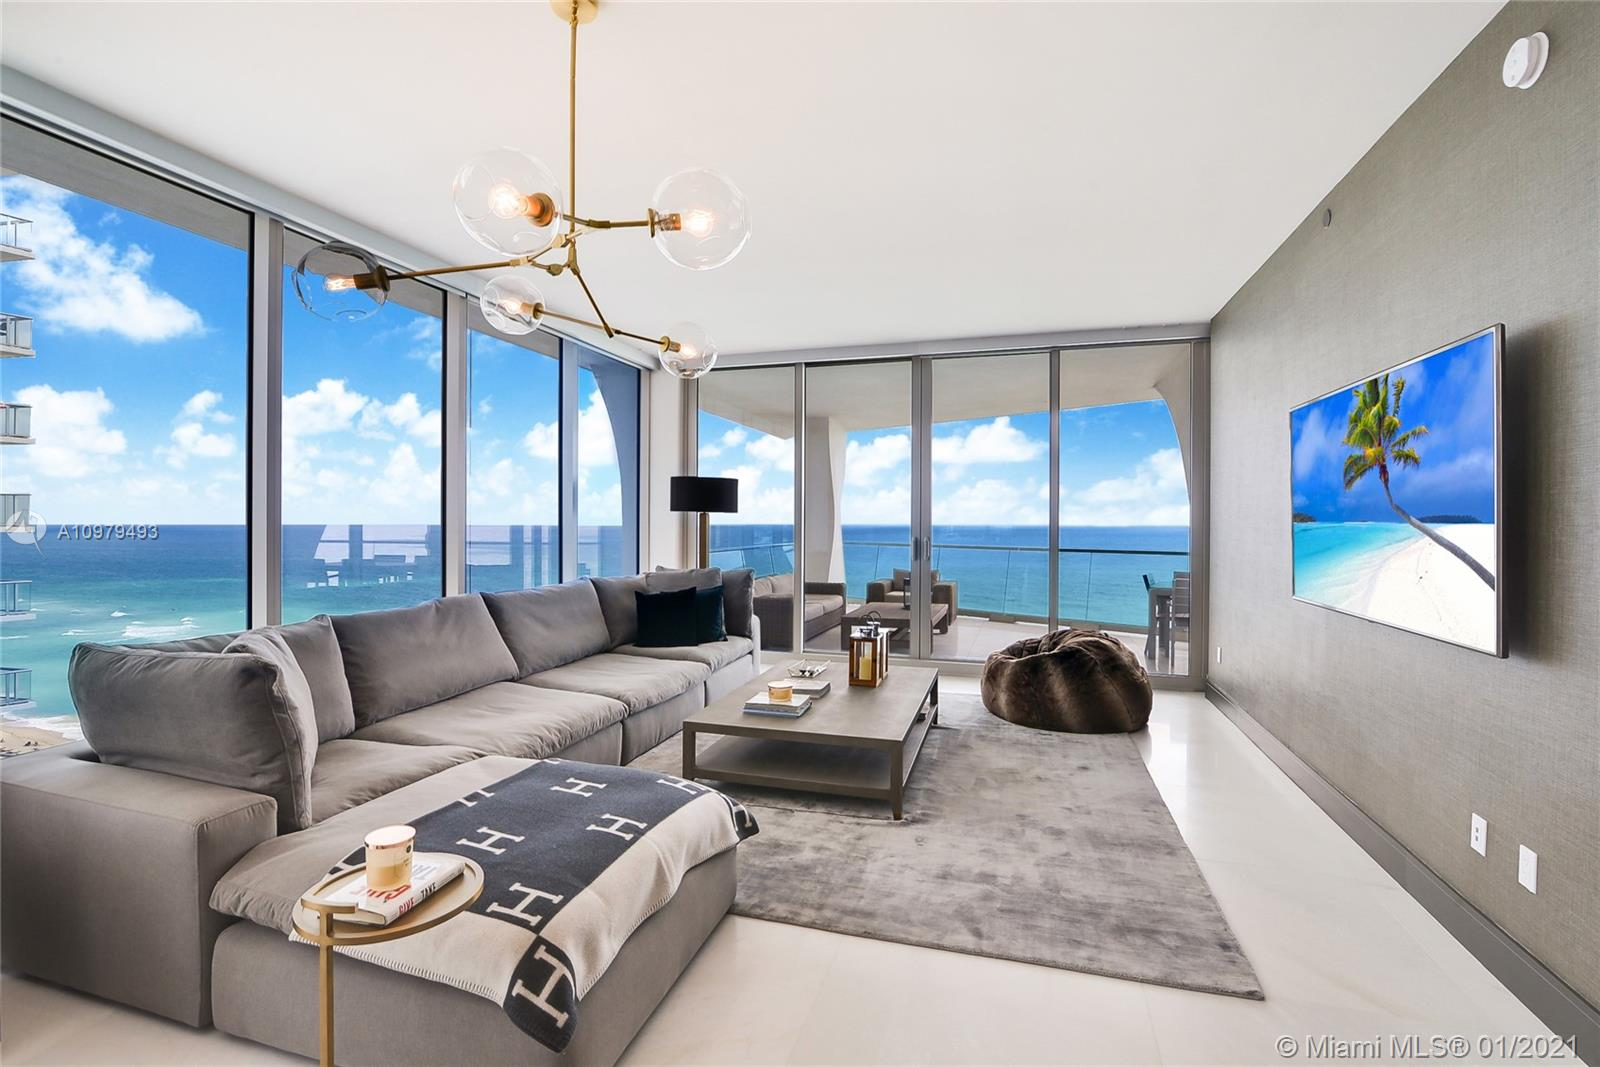 Spectacular Oceanfront residence with breathtaking, unobstructed views of the Atlantic Ocean. Immaculate 4 bedrooms, 5 & 1/2 bathrooms flow through residence with 2 assigned parking spaces, Private elevator and 3,465 sf under AC plus 881 sf of outdoor terraces. It features marble flooring, high end appliances .Enjoy the Jade Signature luxury lifestyle and all the exclusive amenities at this magnificent Residence. Professionally decorated, fully equipped and tastefully designed turn key unit.